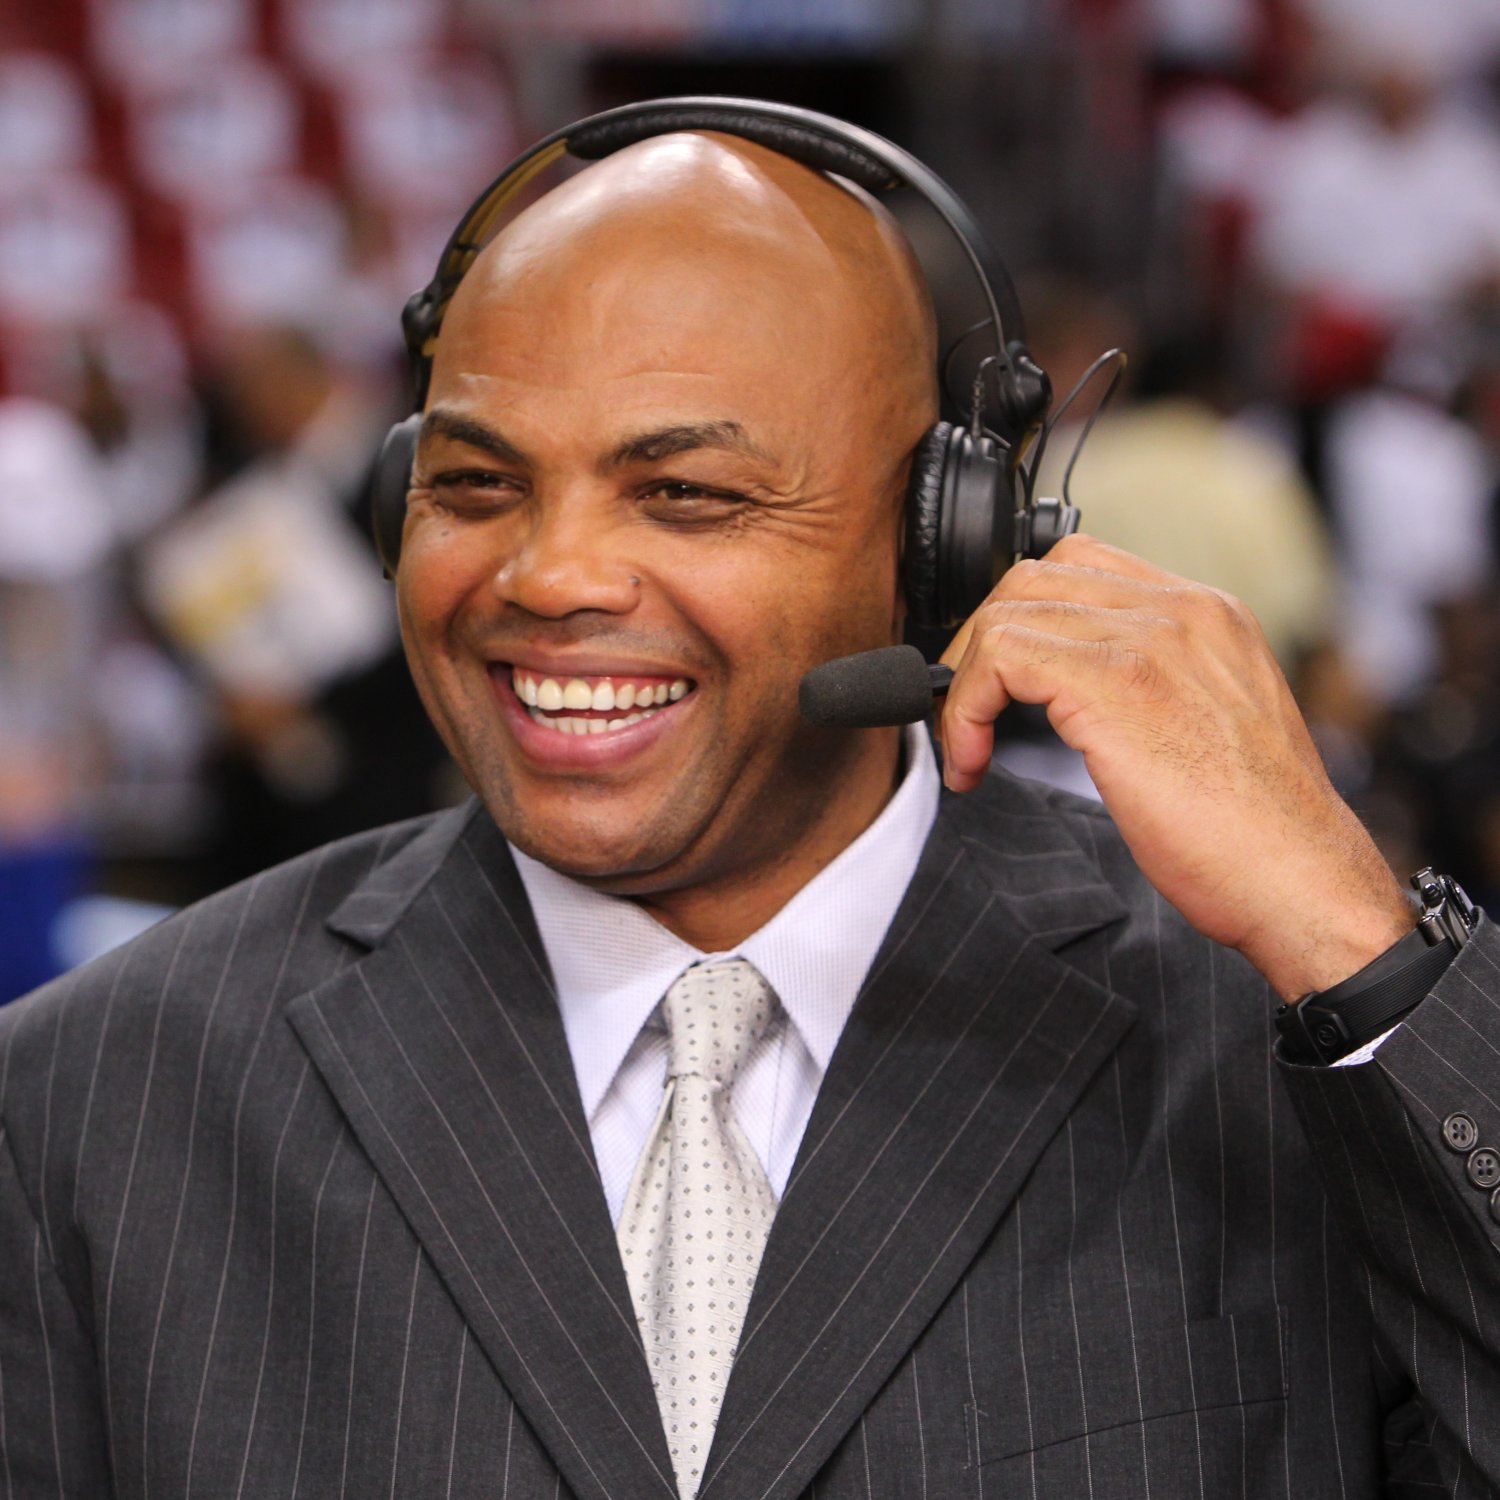 charles-barkley-shares-a-laugh-before-the-game_crop_exact